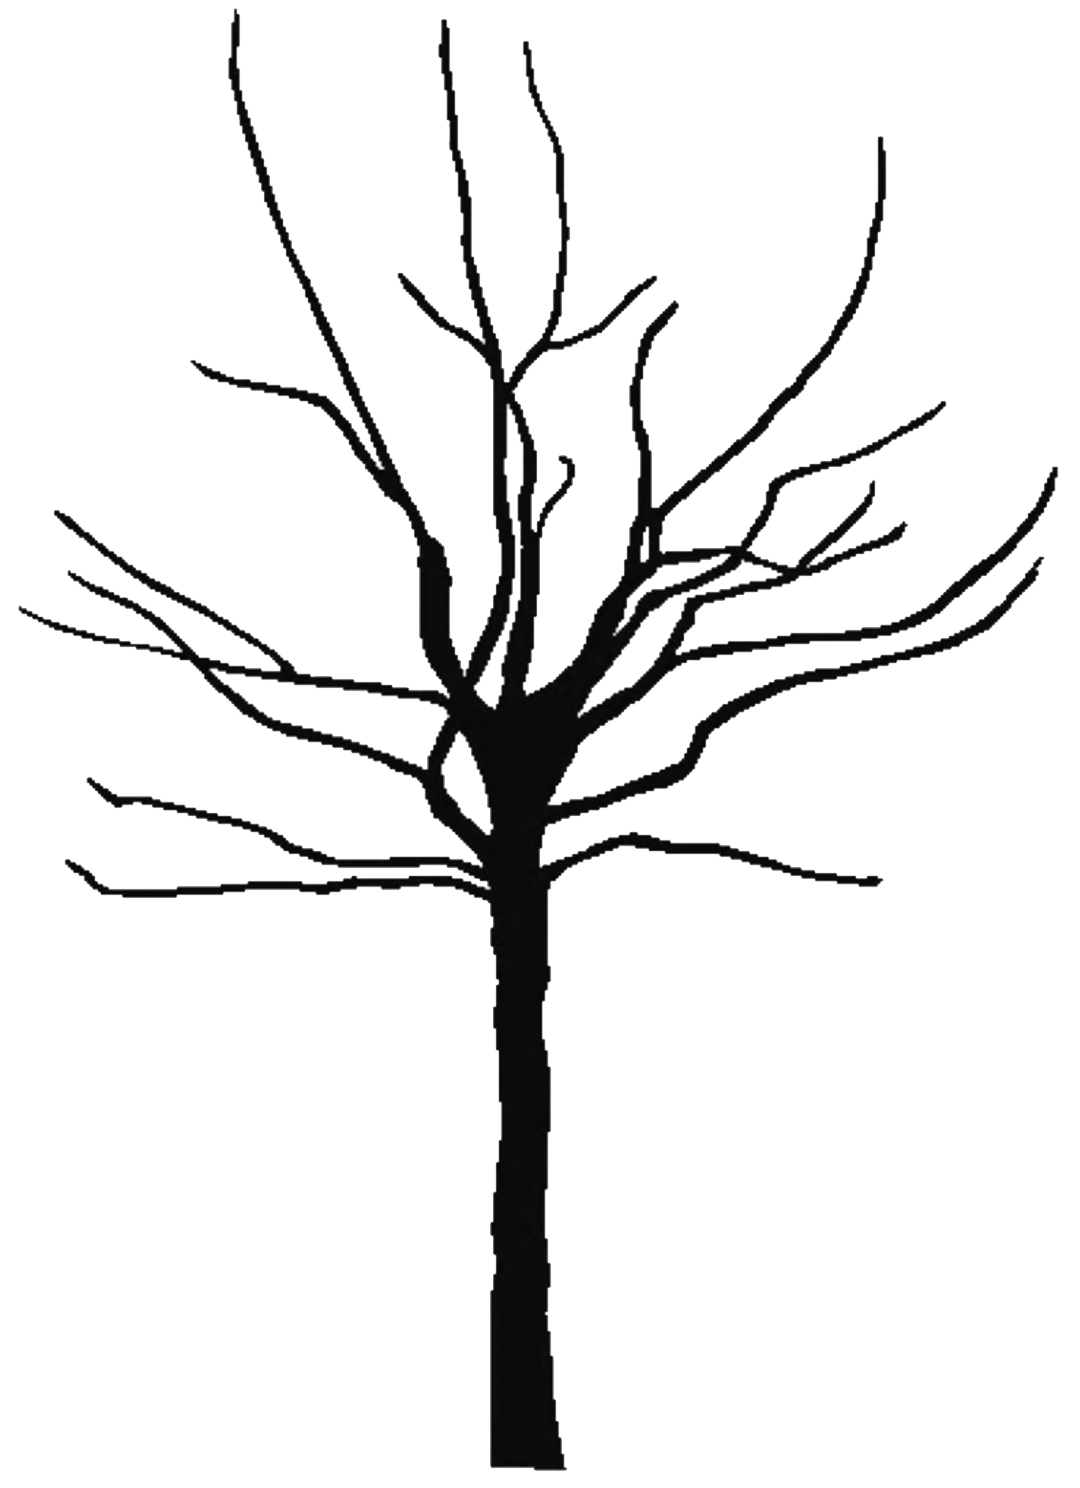 Tree trunk clipart black and white vector download bare tree clipart - Free Large Images | Projects to Try | Pinterest ... vector download